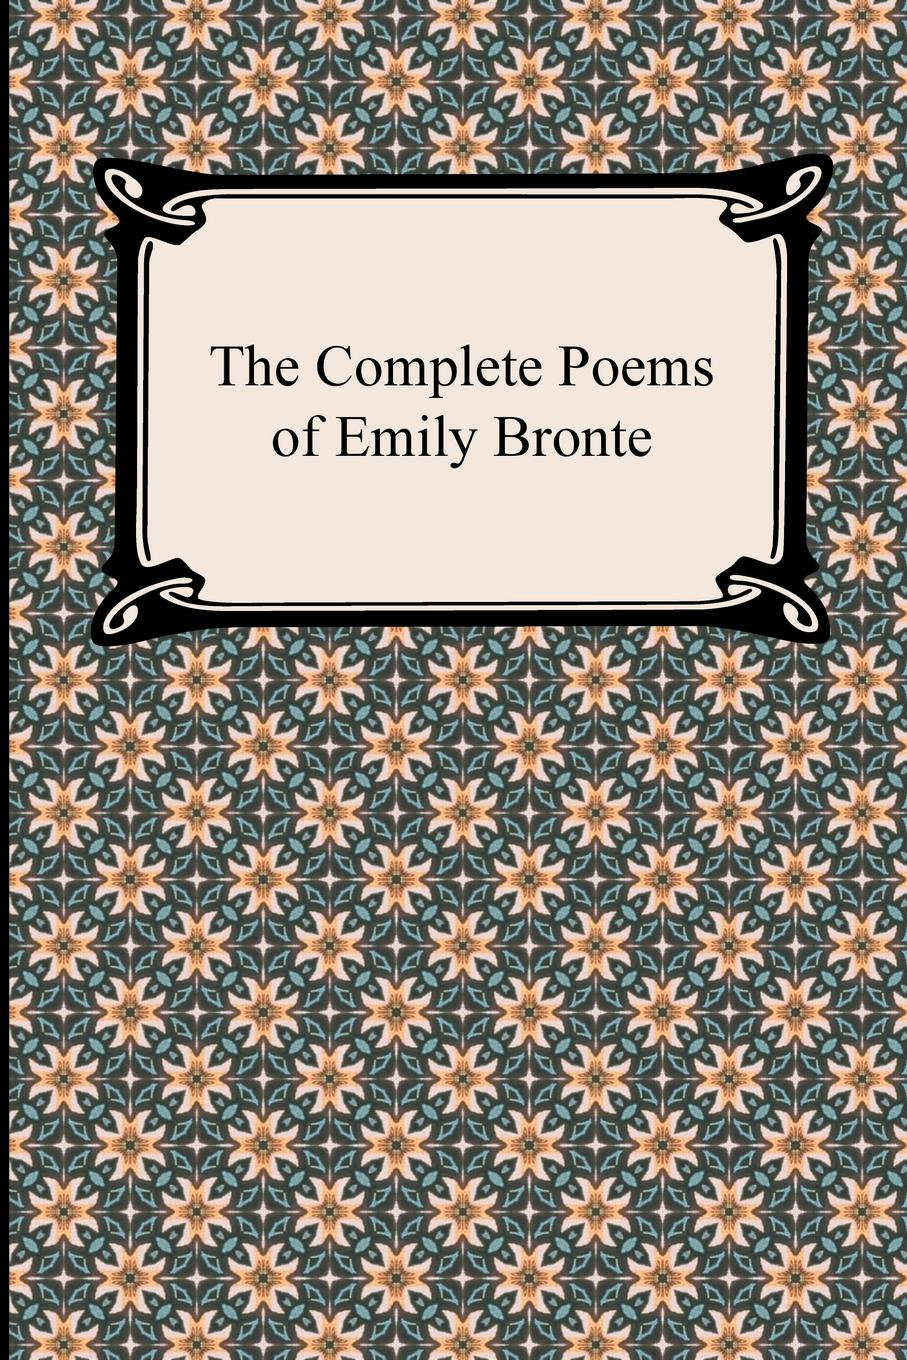 Emily Bronte The Complete Poems of Emily Bronte